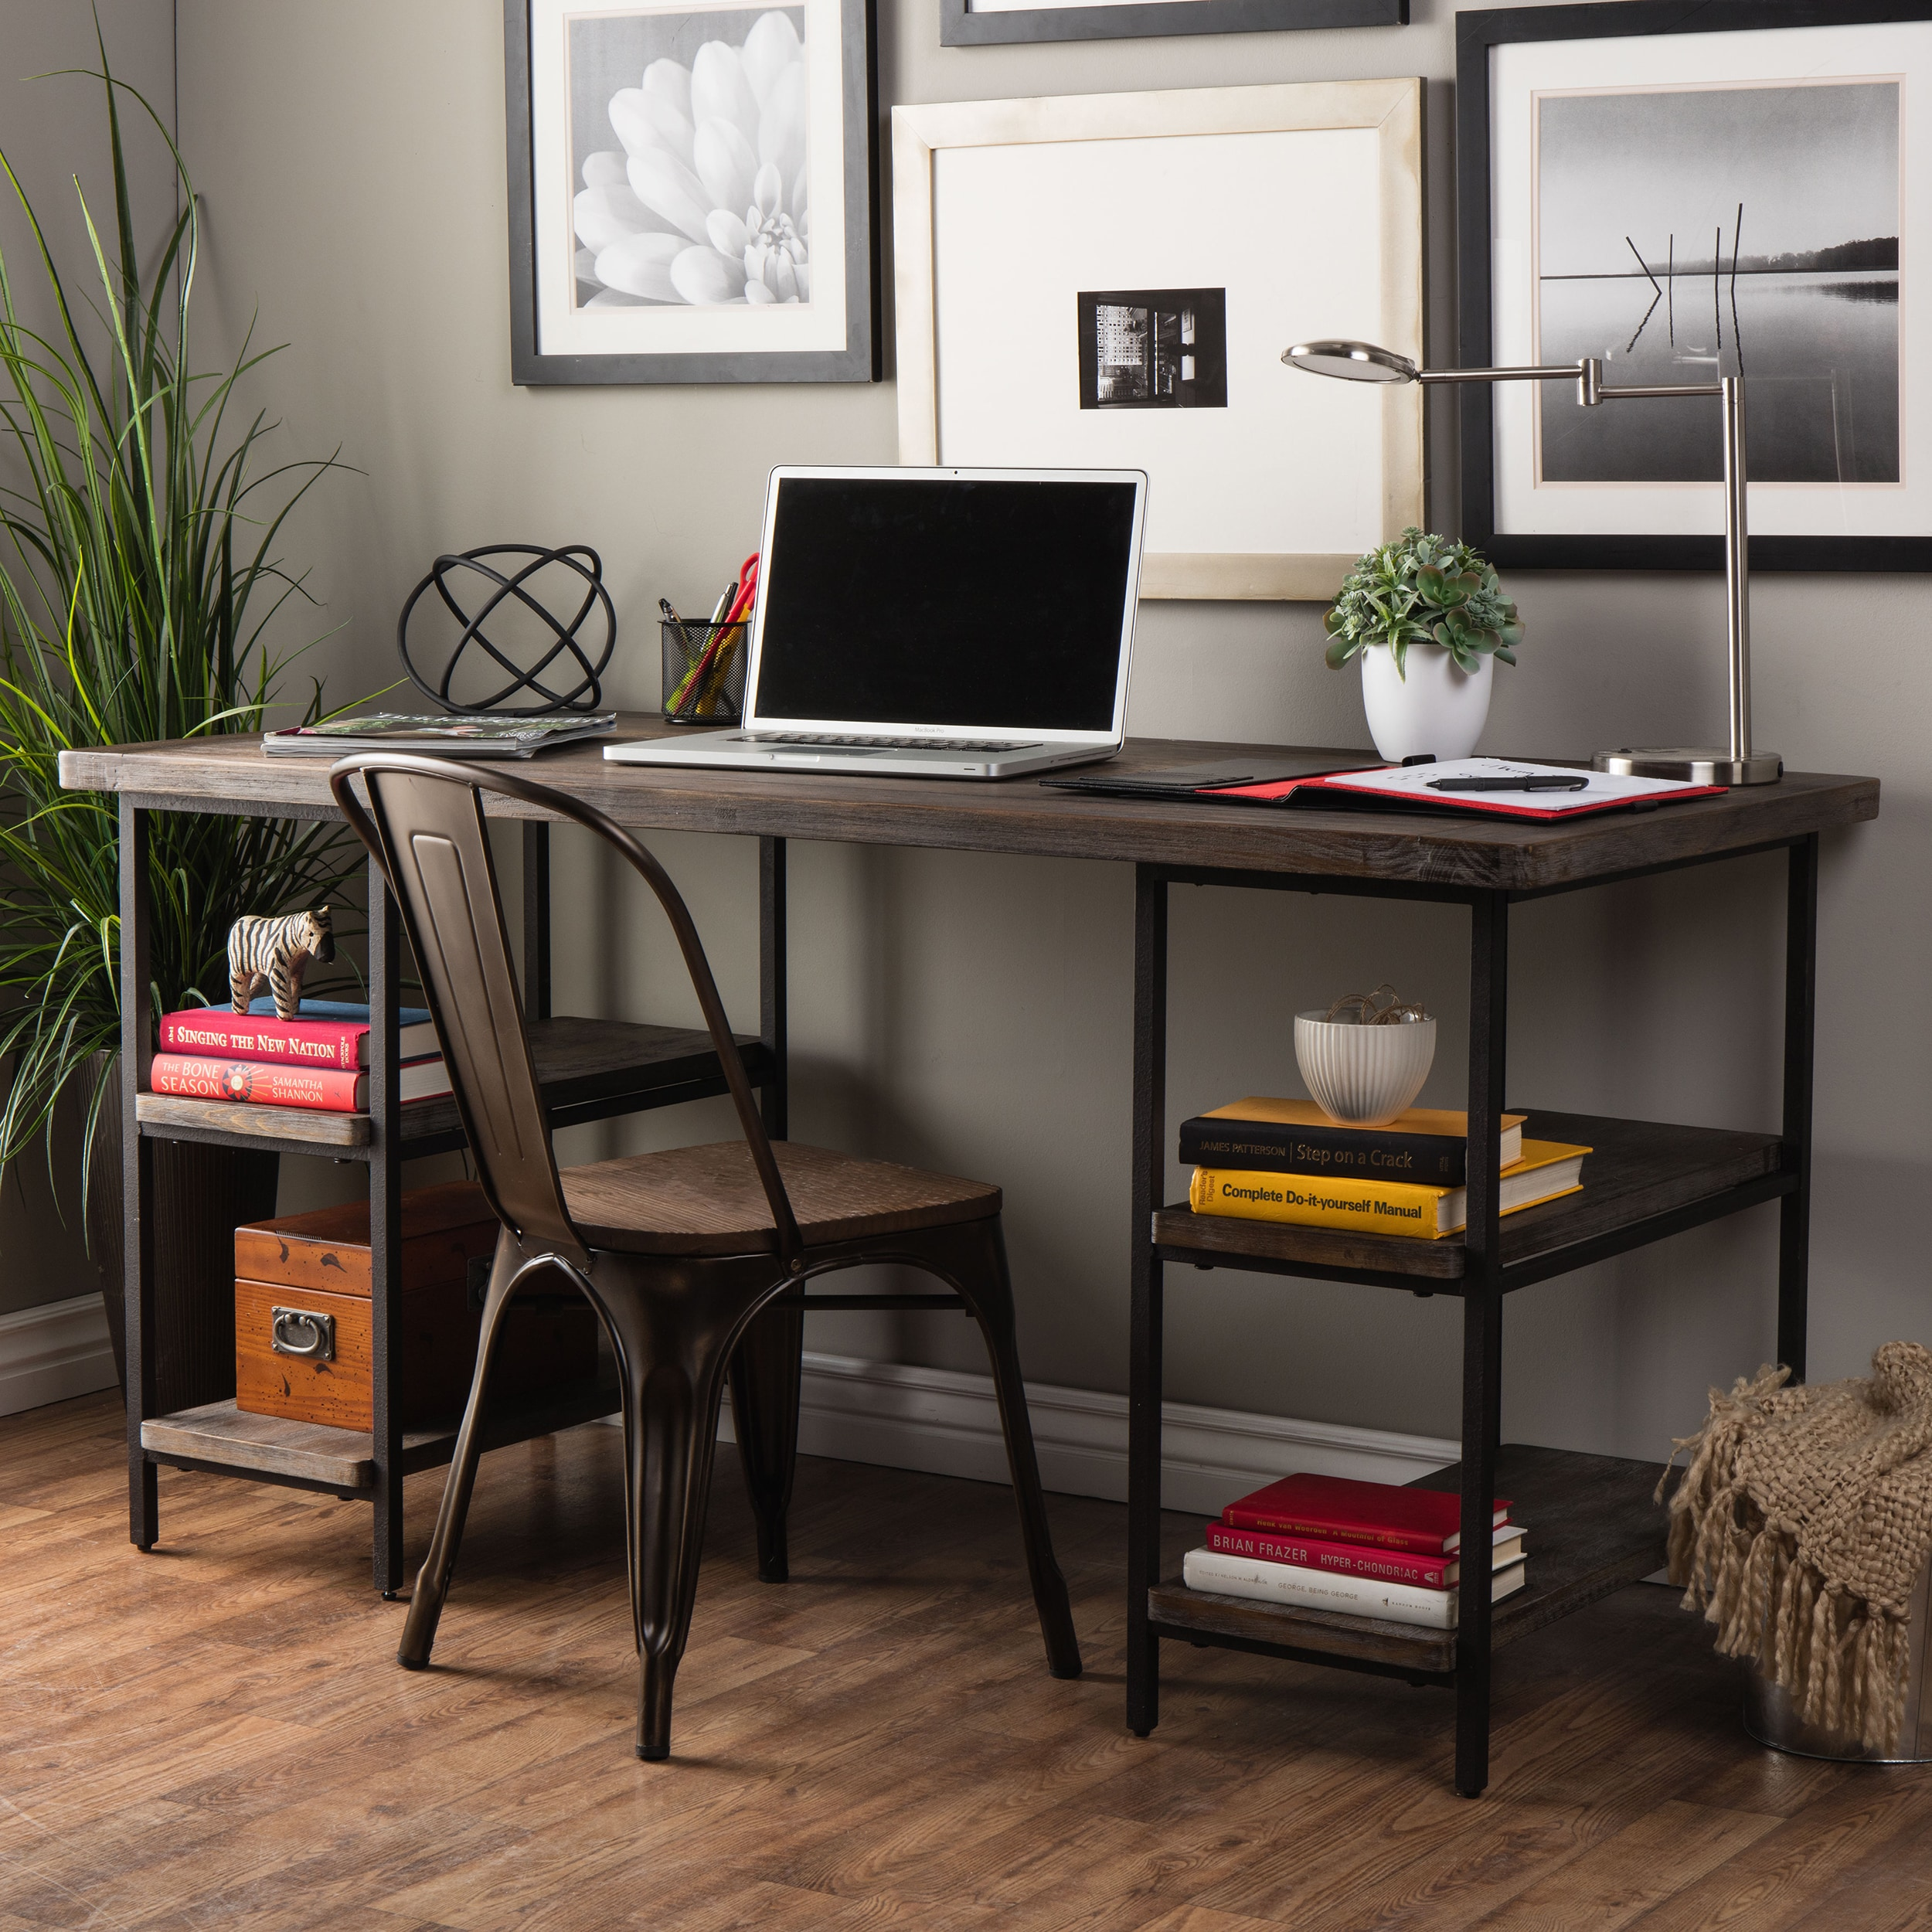 Beau Shop Stones U0026 Stripes Renate Reclaimed Wood And Metal Office Desk   Free  Shipping Today   Overstock.com   6382180